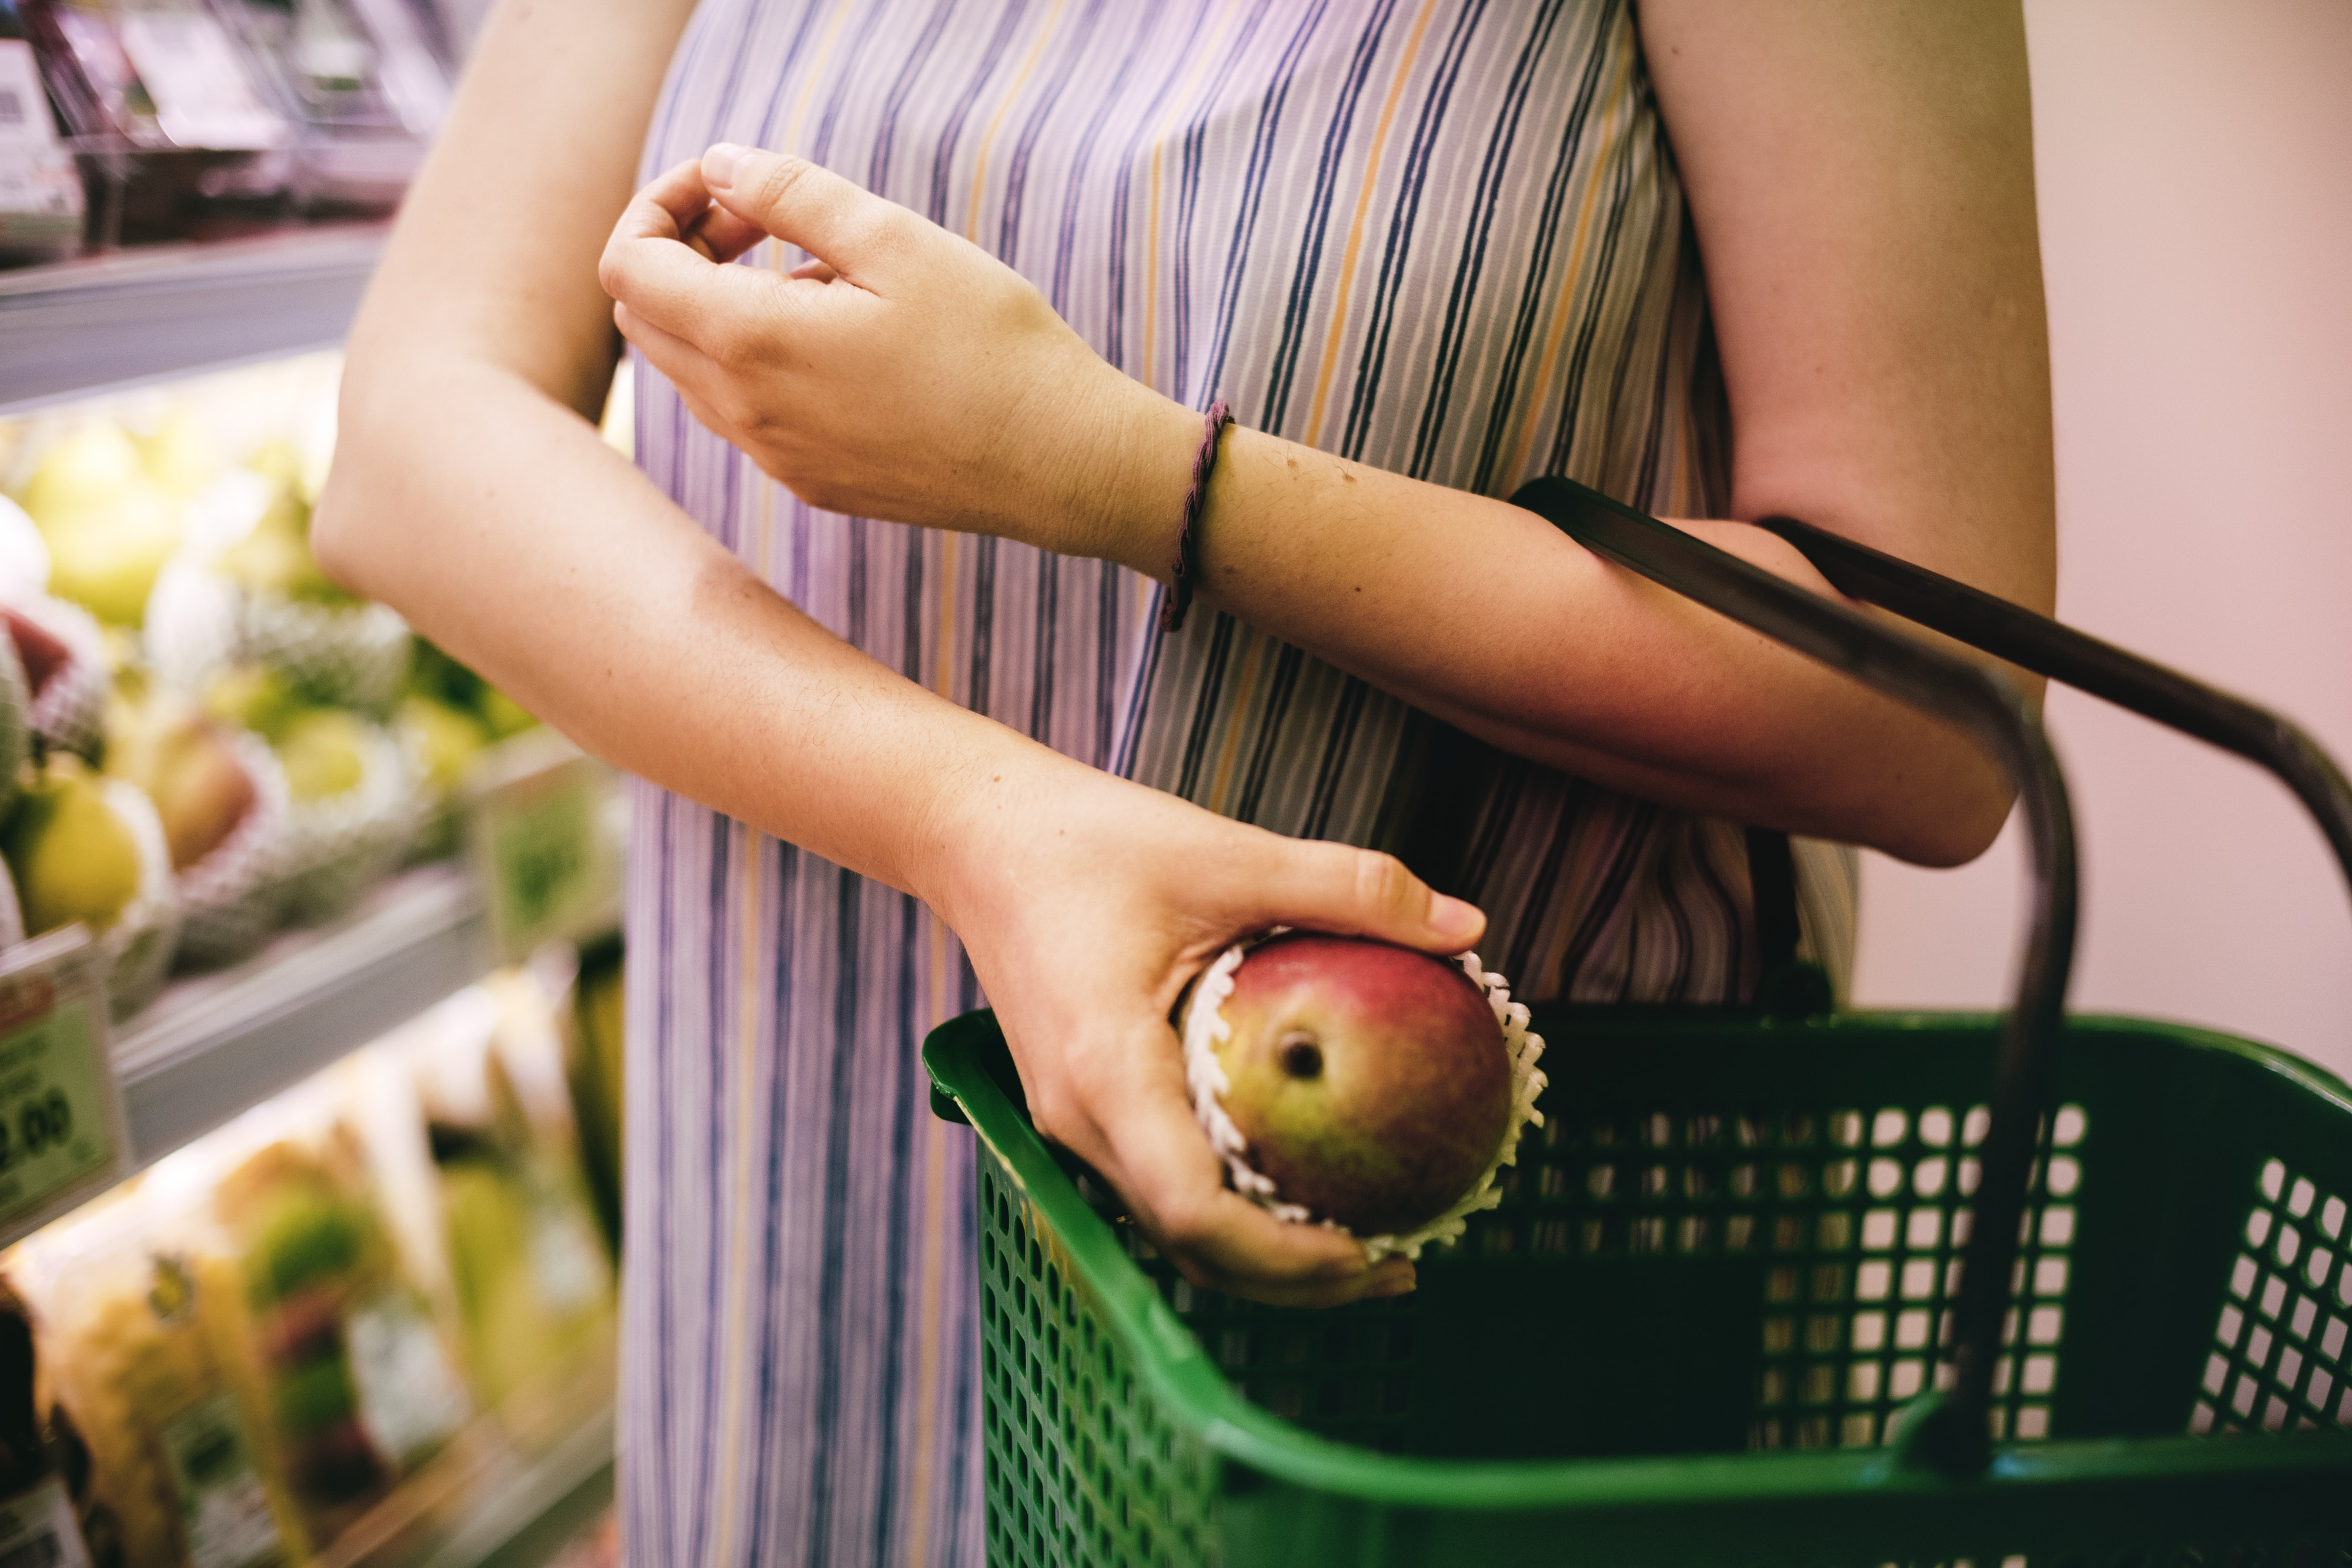 woman carrying green basket while holding fruit